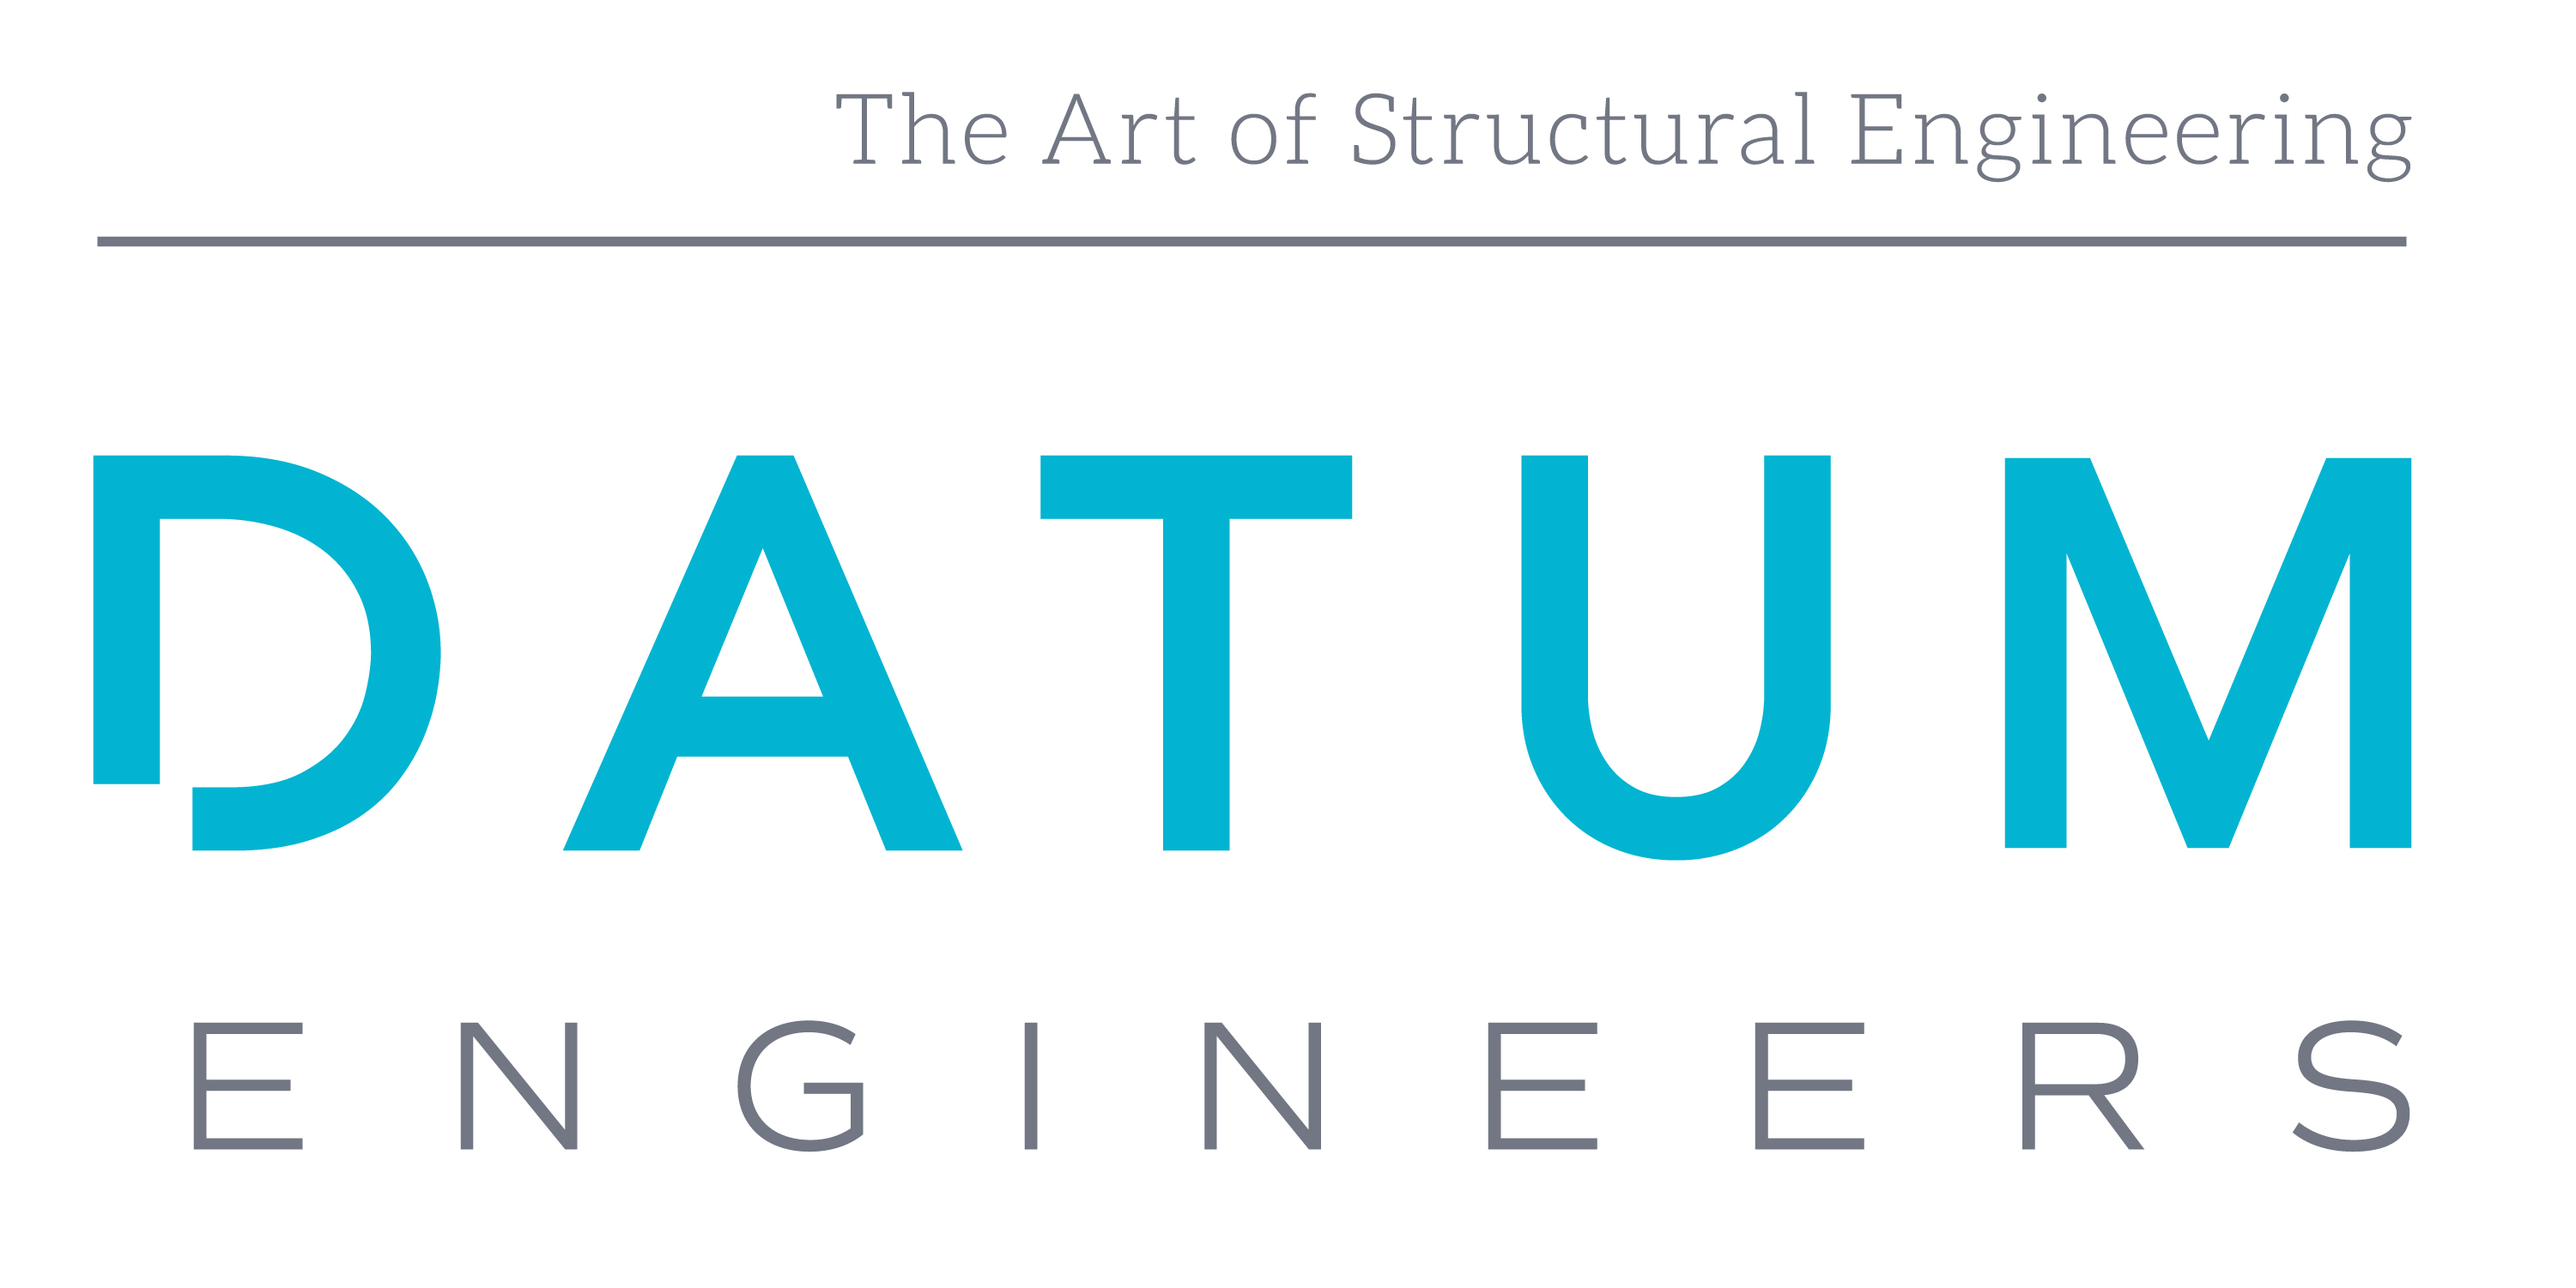 Celebrate Architecture 2020 - Datum Engineers logo